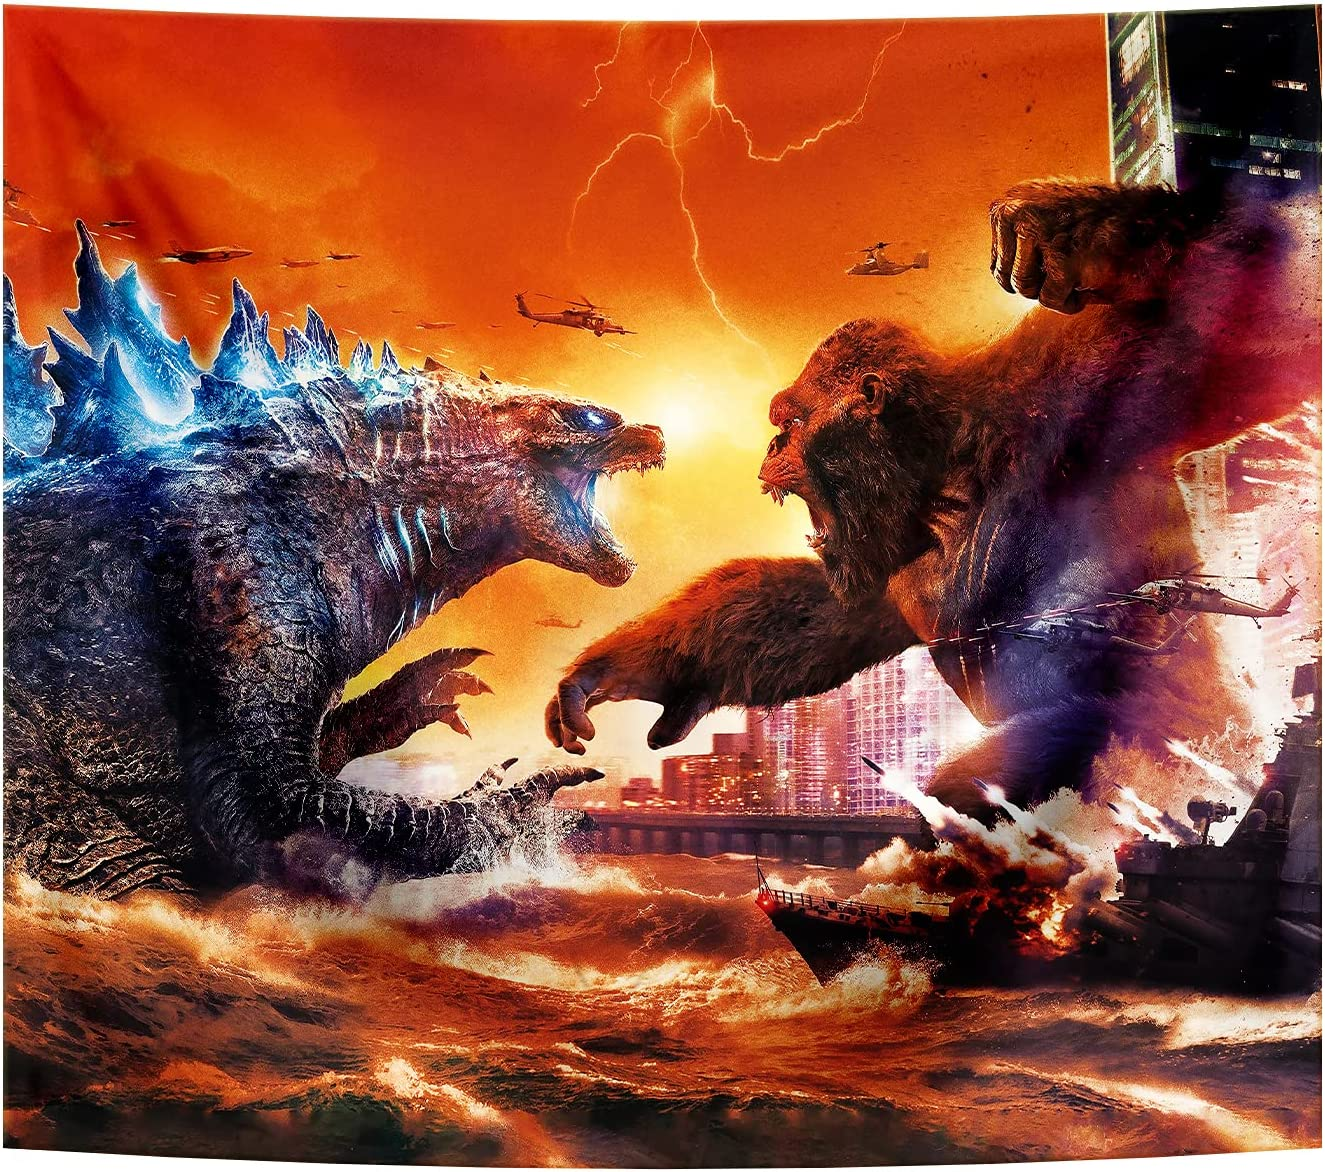 Tapestry Godzilla vs Kong Monsters Theme Party Supplies Fabric Wall Hangings Tapestry for Home Bedroom Living Room Dorm Wall Decor 51x59in